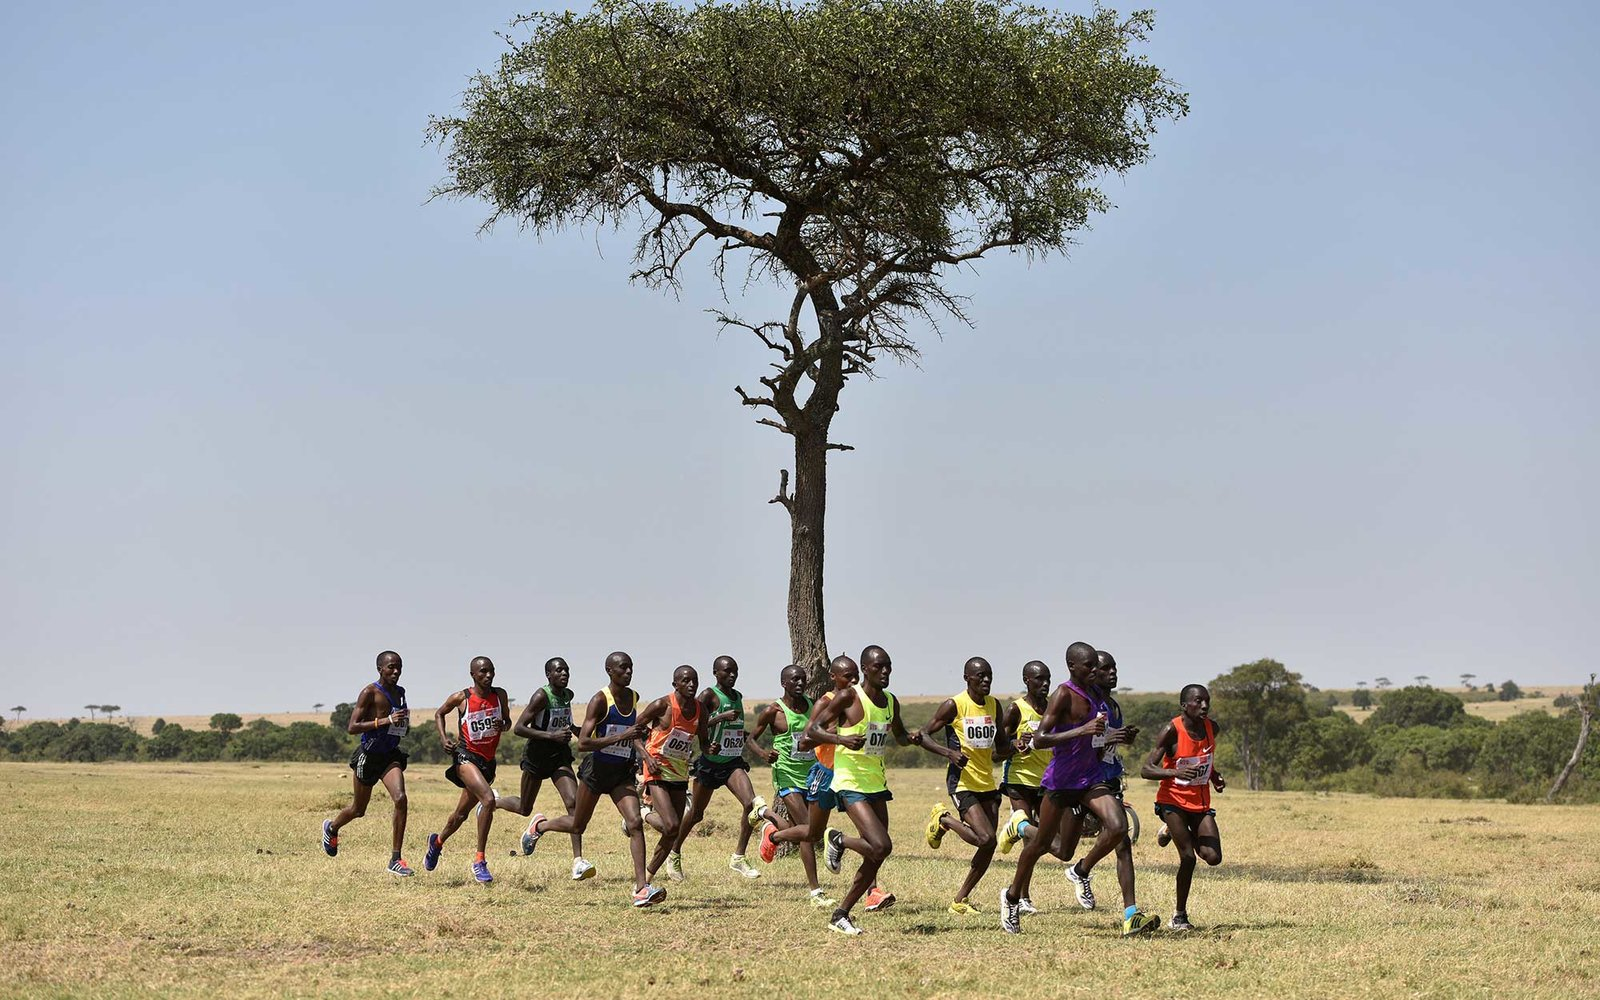 F9243D (151213) -- MASAI MARA, Dec. 13, 2015 (Xinhua) -- Athletes compete during the 7th Masai Mara Marathon on the Masai Mara savanna in Kenya, on Aug. 15, 2015. As a country Kenya has considerable land area devoted to wildlife habitats. The tropical wet